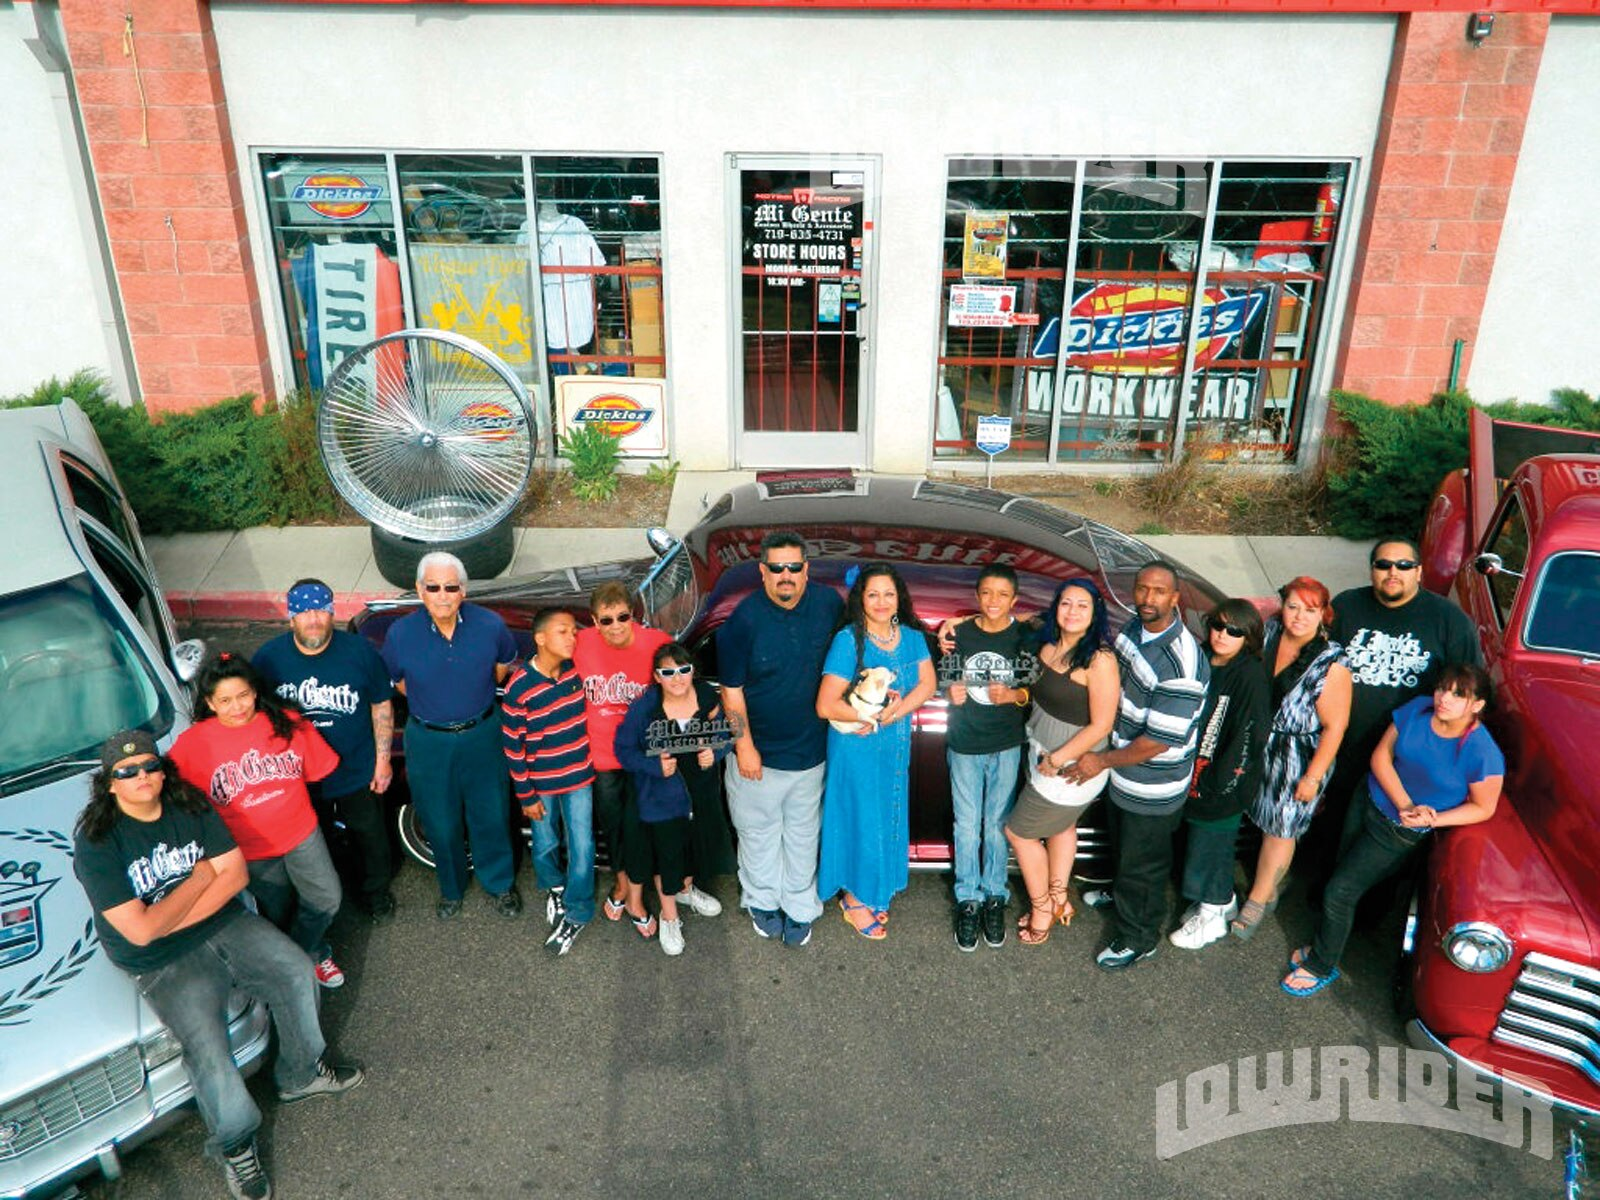 1208-lrmp-03-o-sauls-shop-talk-group-photo1